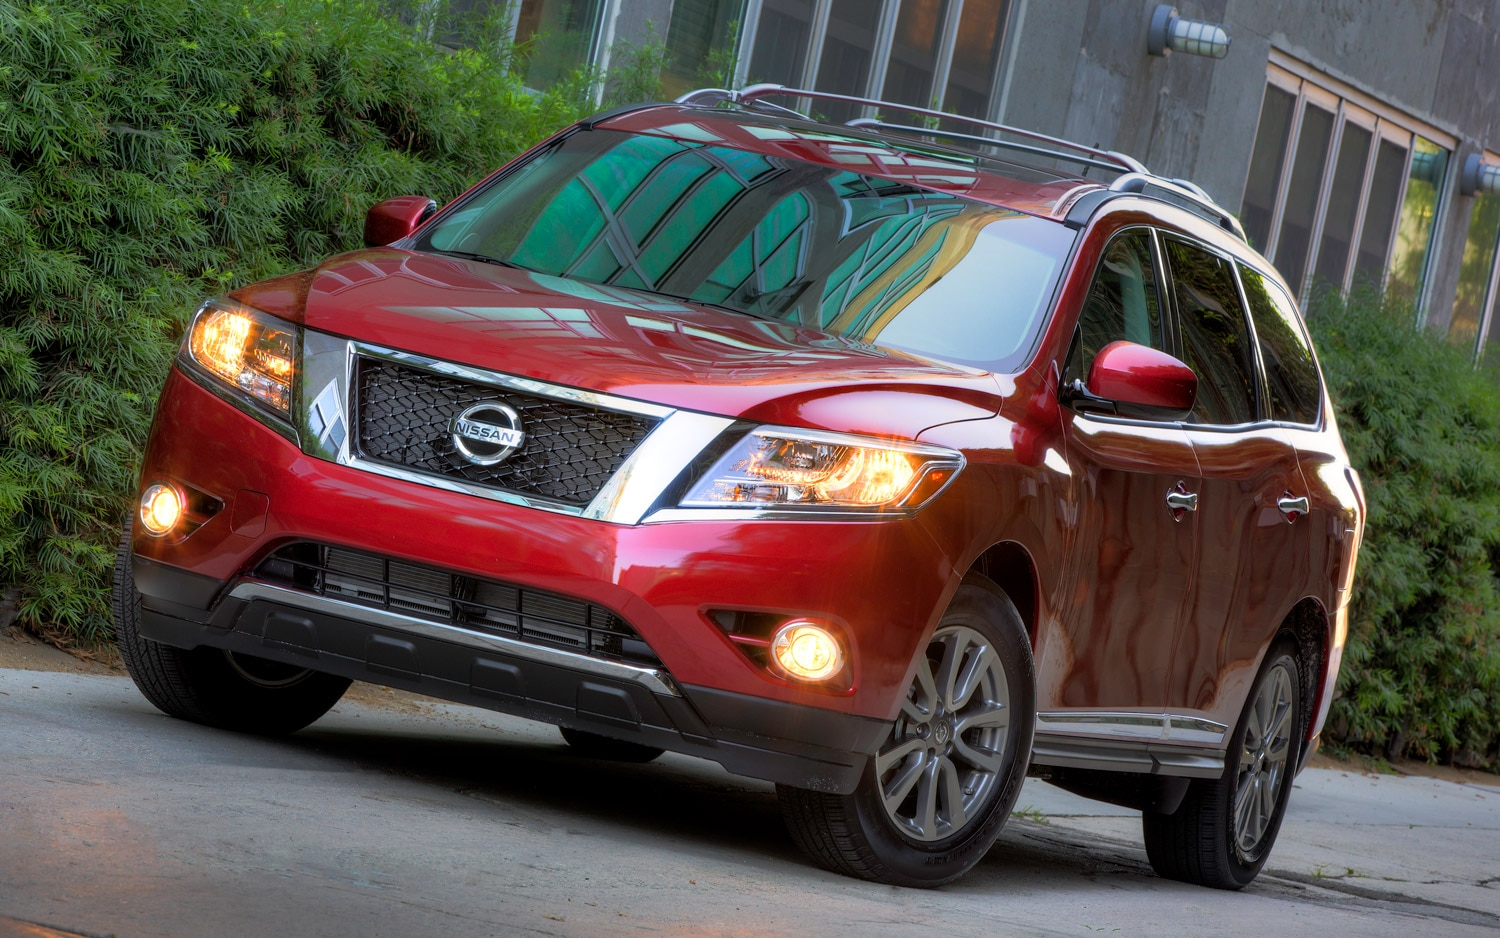 2013 Nissan Pathfinder Front In Red